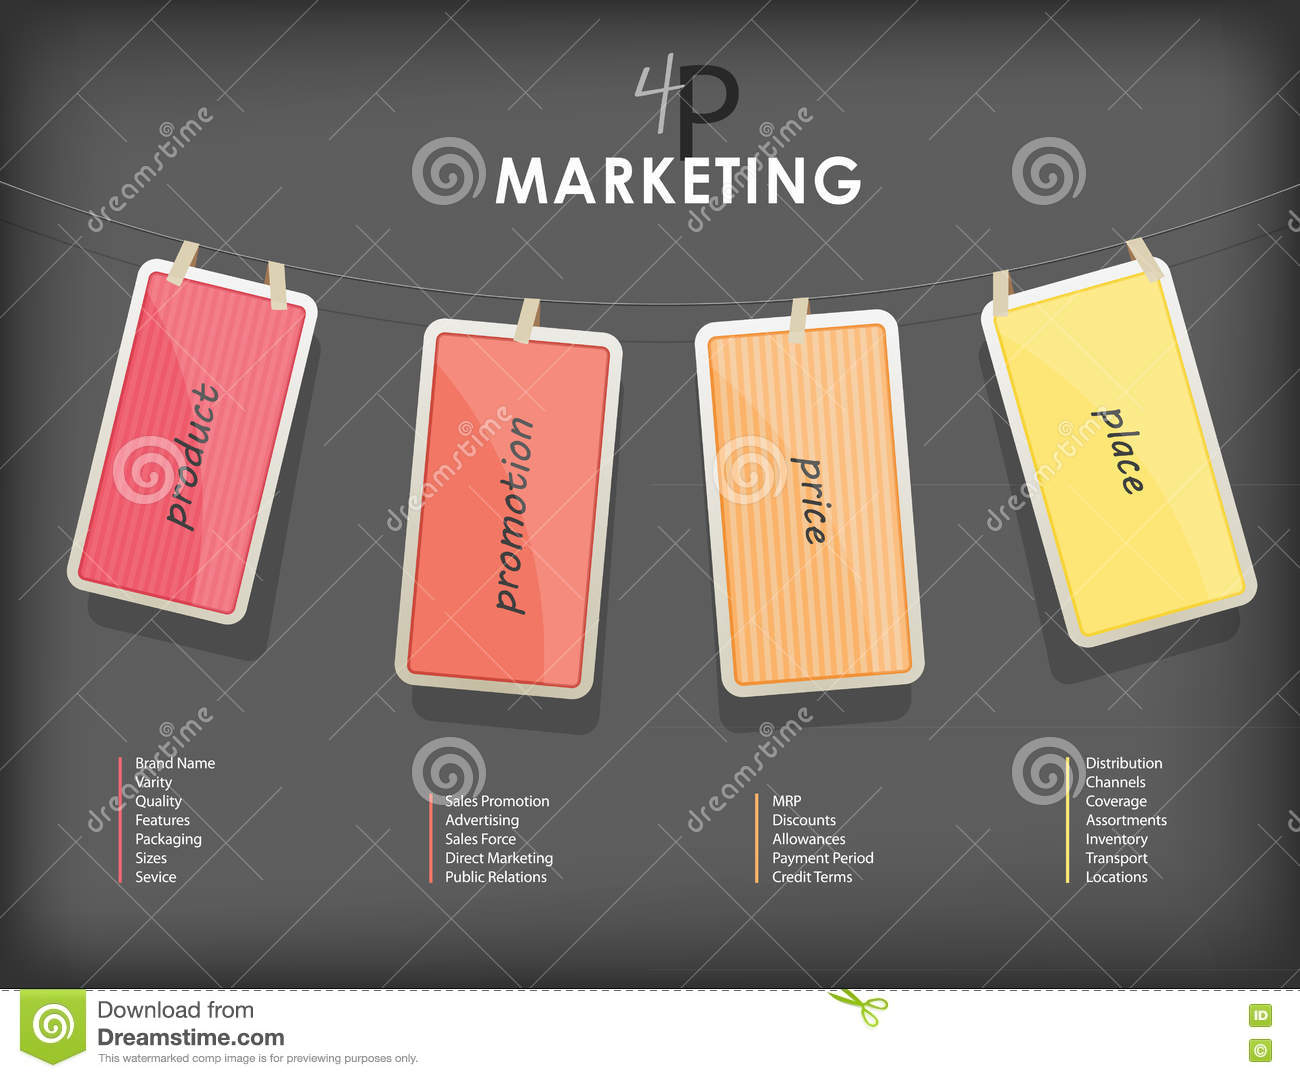 PayPal Marketing Mix (4Ps) Strategy